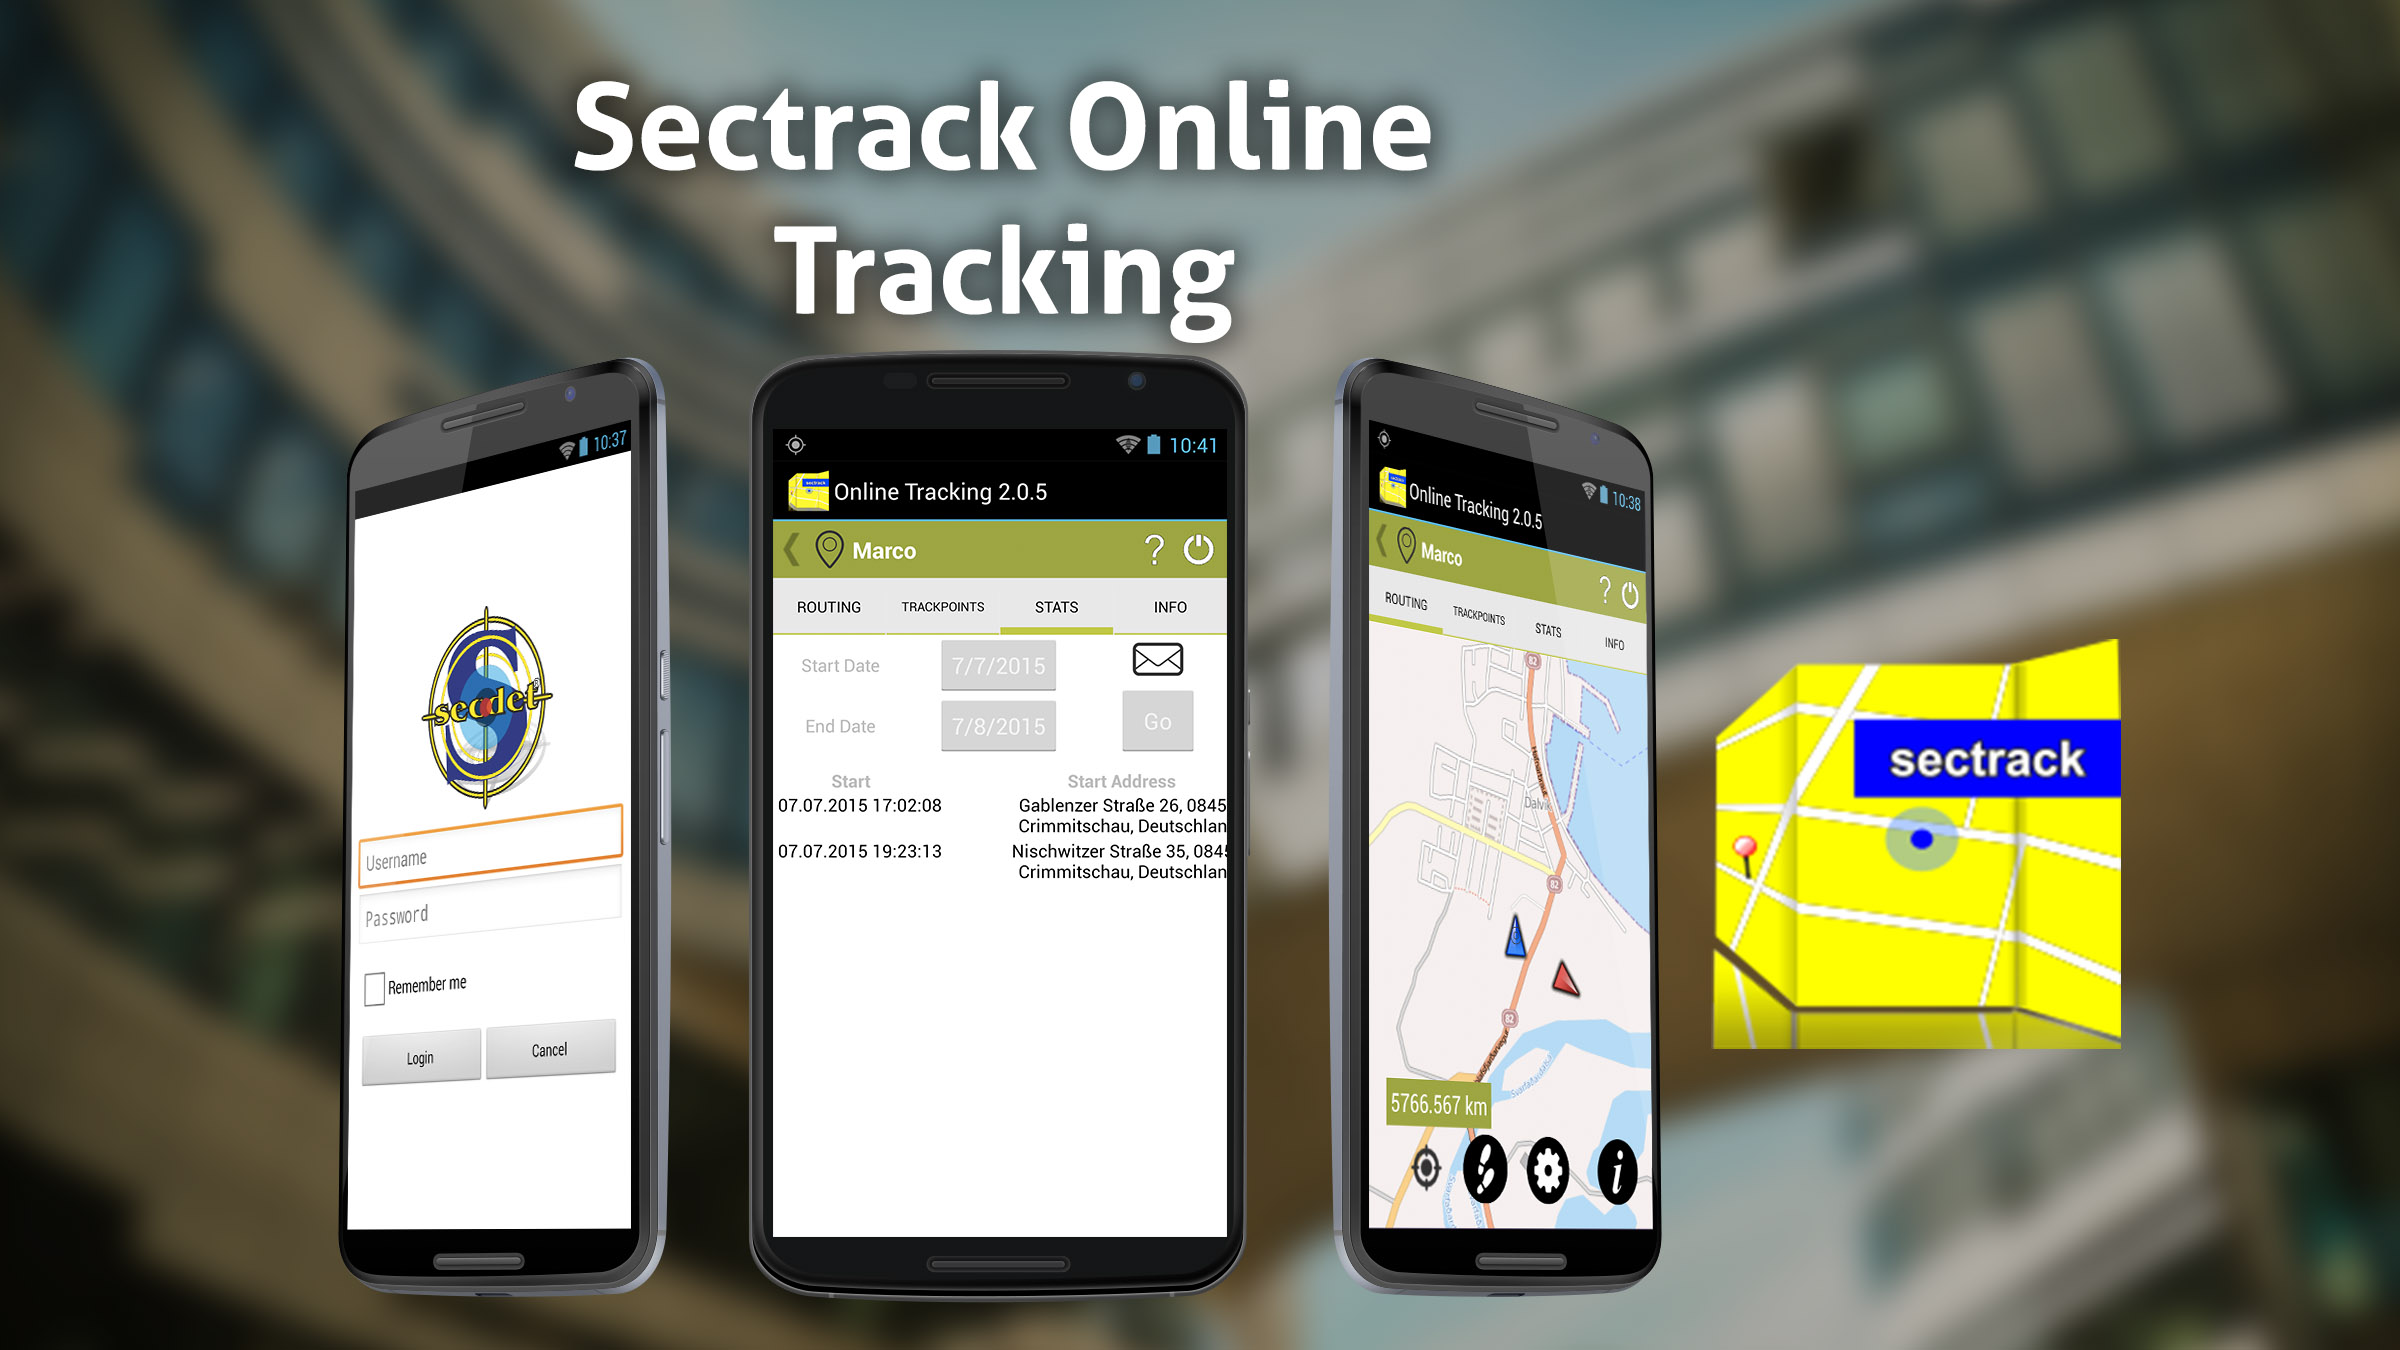 sectrack-online-tracking